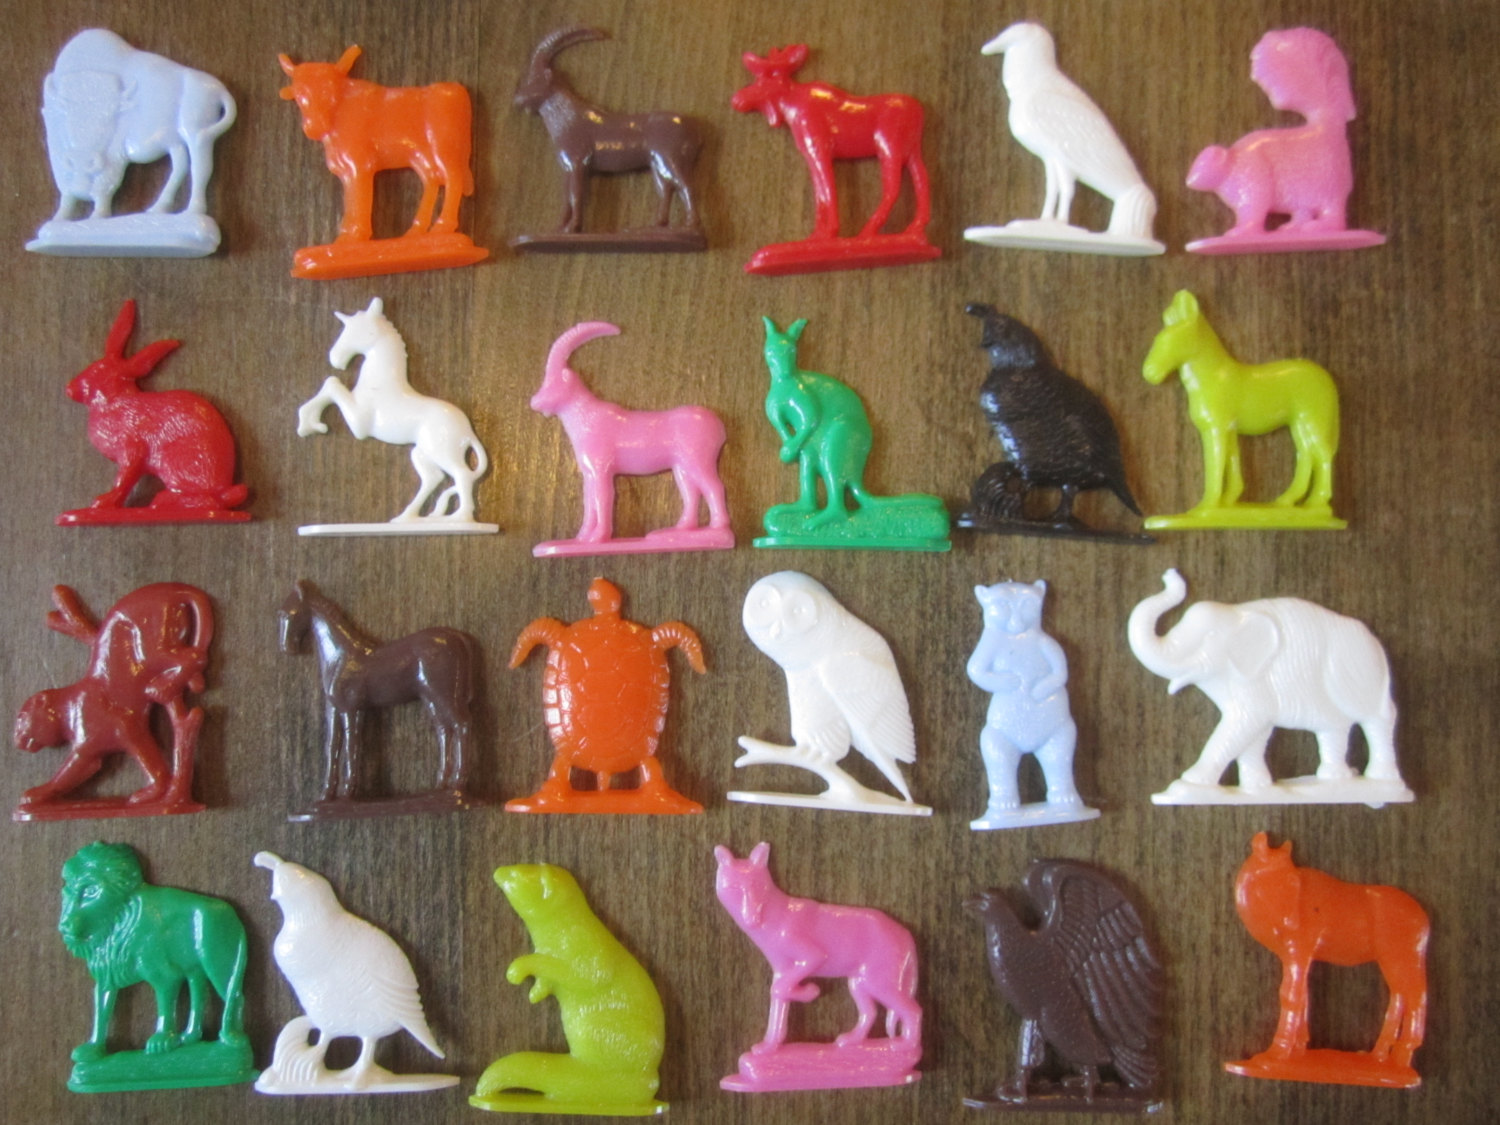 Cracker Jack Prizes Plastic Animals 1960s